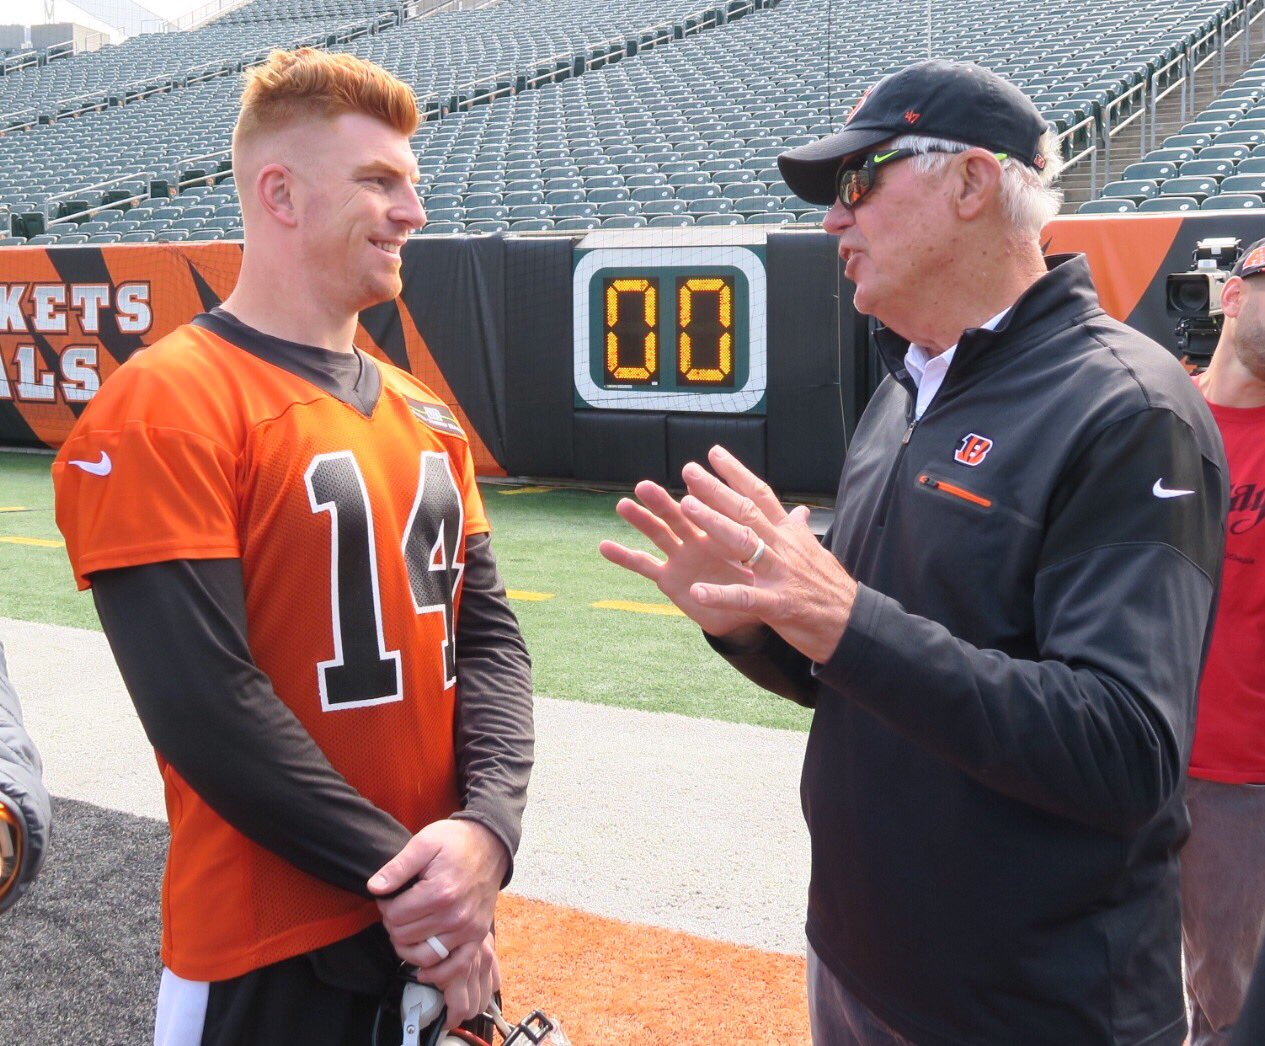 No. 14 getting advice from another no. 14. #Bengals50 #AndyDalton #KenAnderson https://t.co/evzFd2c5FG